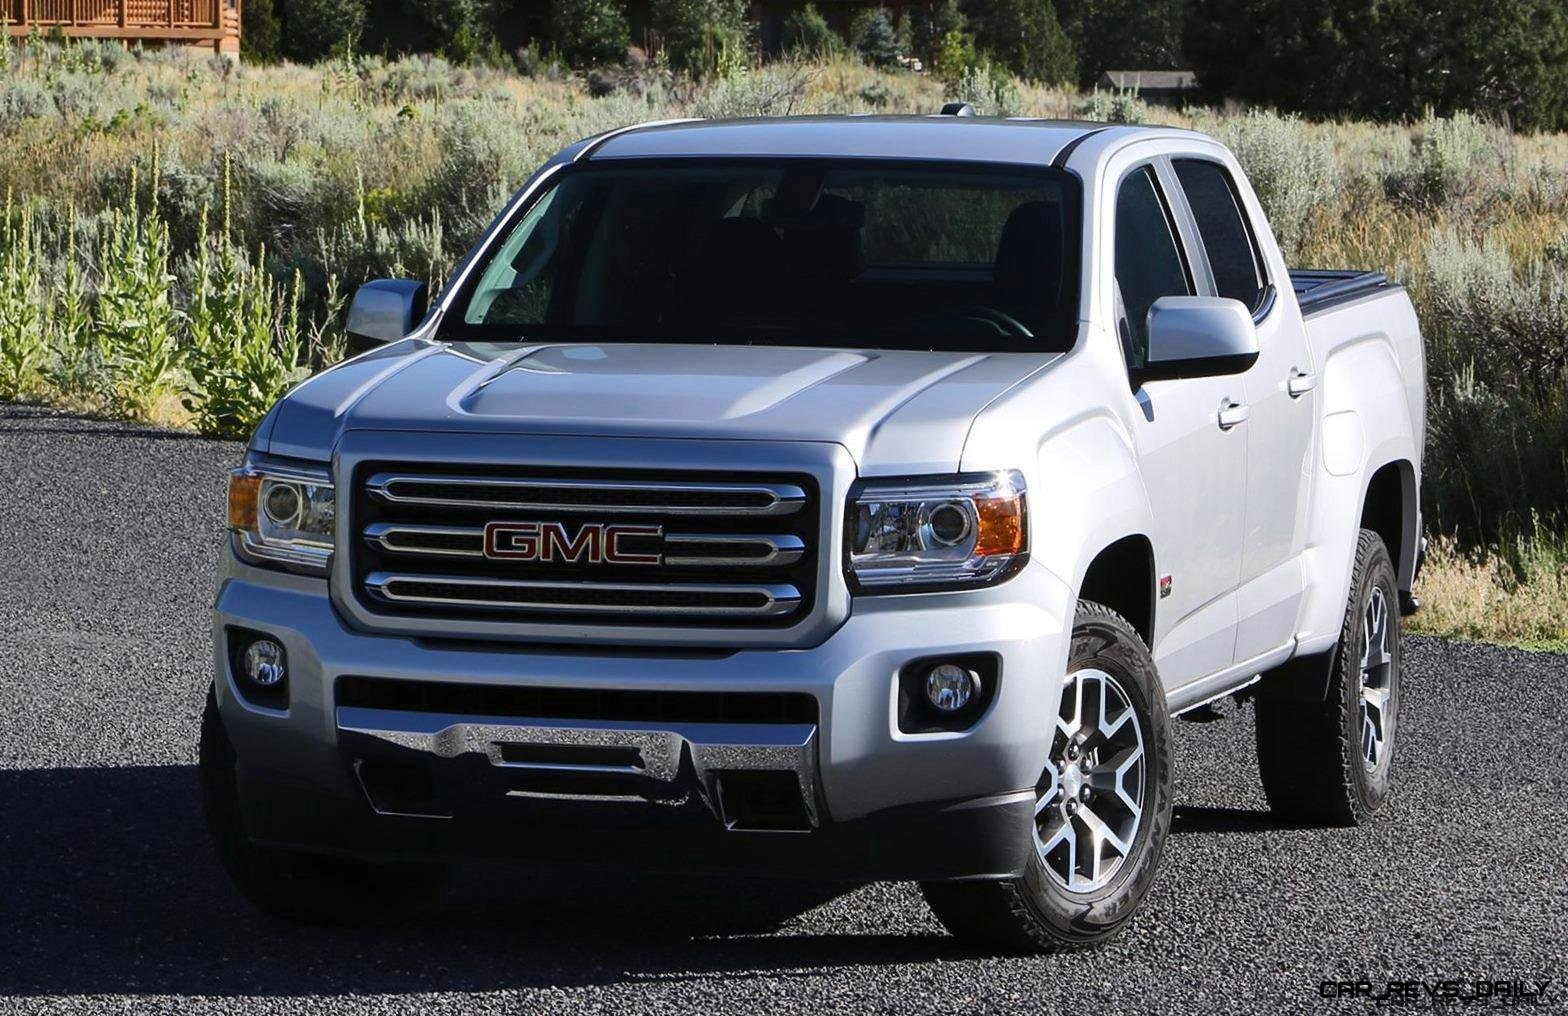 Drive Review - 2016 GMC CANYON DuraMax SLT 4WD - By Ben Lewis » CAR SHOPPING